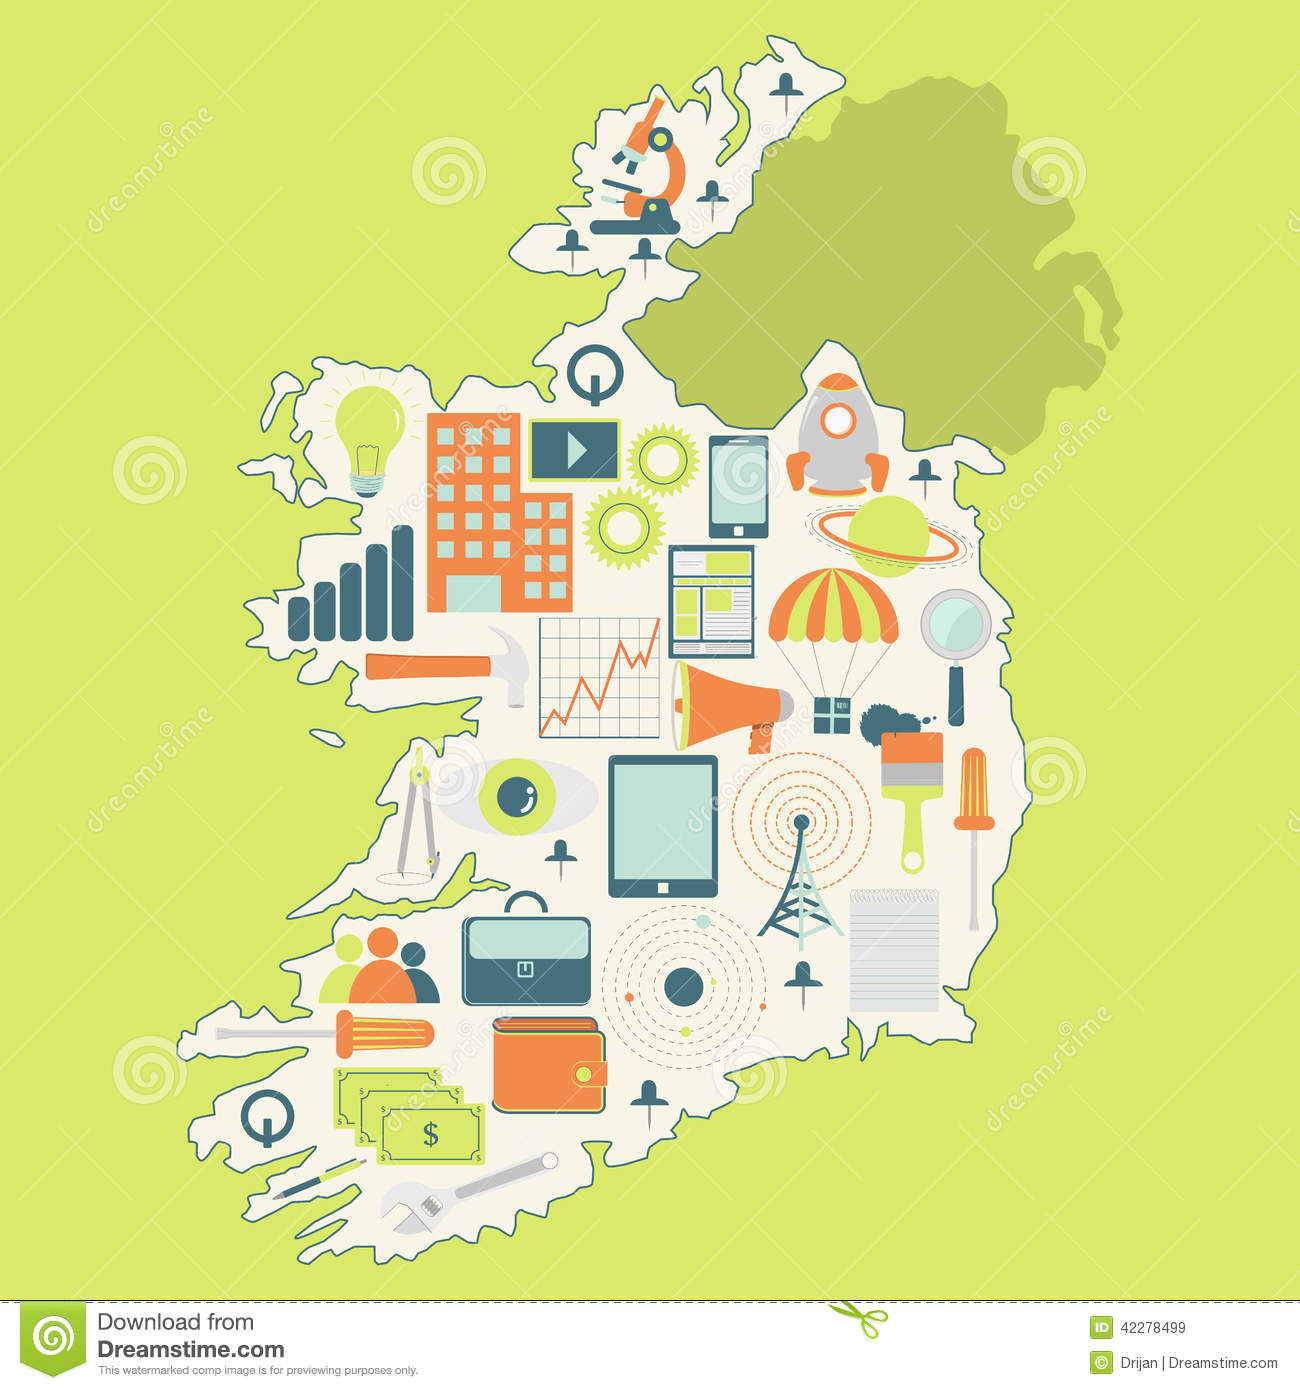 Map Of Ireland With Technology Icons Stock Vector ... Illustration Map Of Ireland on map of netherlands, map of european countries, map of japan, map of britain, map of british isles, map of dublin, map of skellig islands, map of denmark, map of united kingdom, map of ring of kerry, map of united states, map of prince edward island, map of eastern hemisphere, map of yugoslavia, map of northeast us, map of sweden, map of scotland, map of london, map of hong kong, map of philippines,